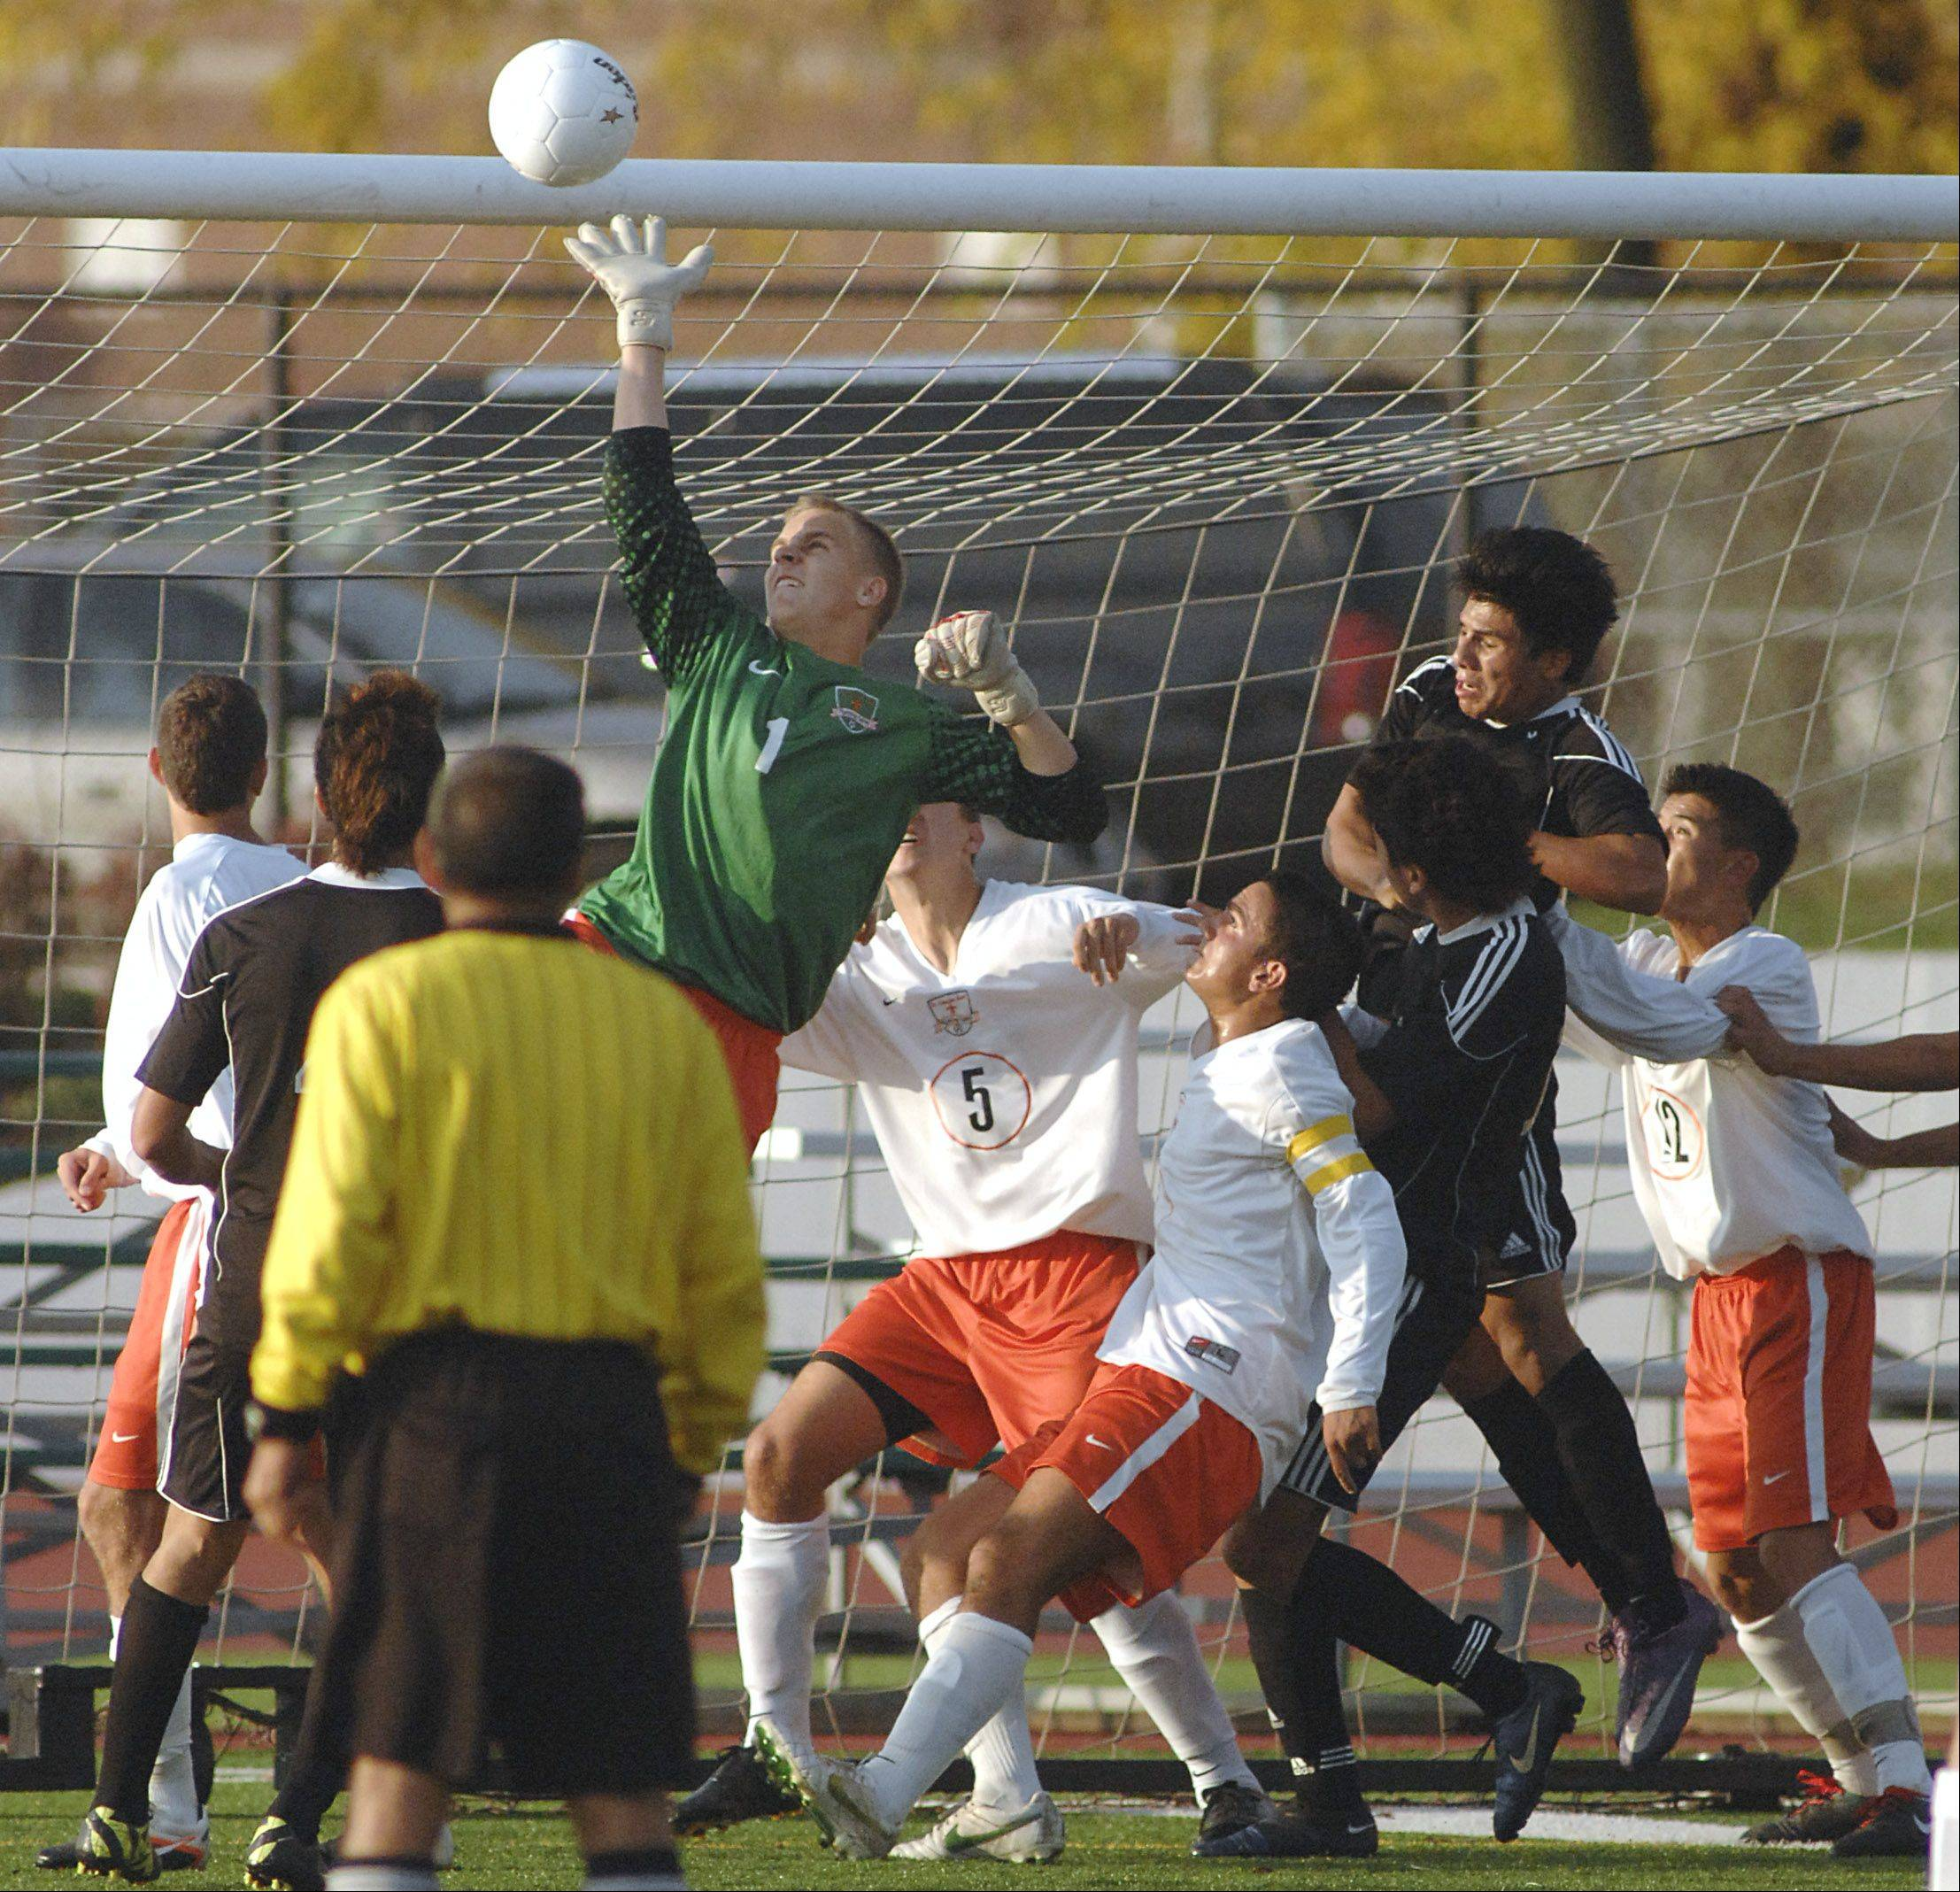 St. Charles East goalie Mike Novotny deflects an attempt on the goal by Streamwood in the first half on Tuesday, October 23.